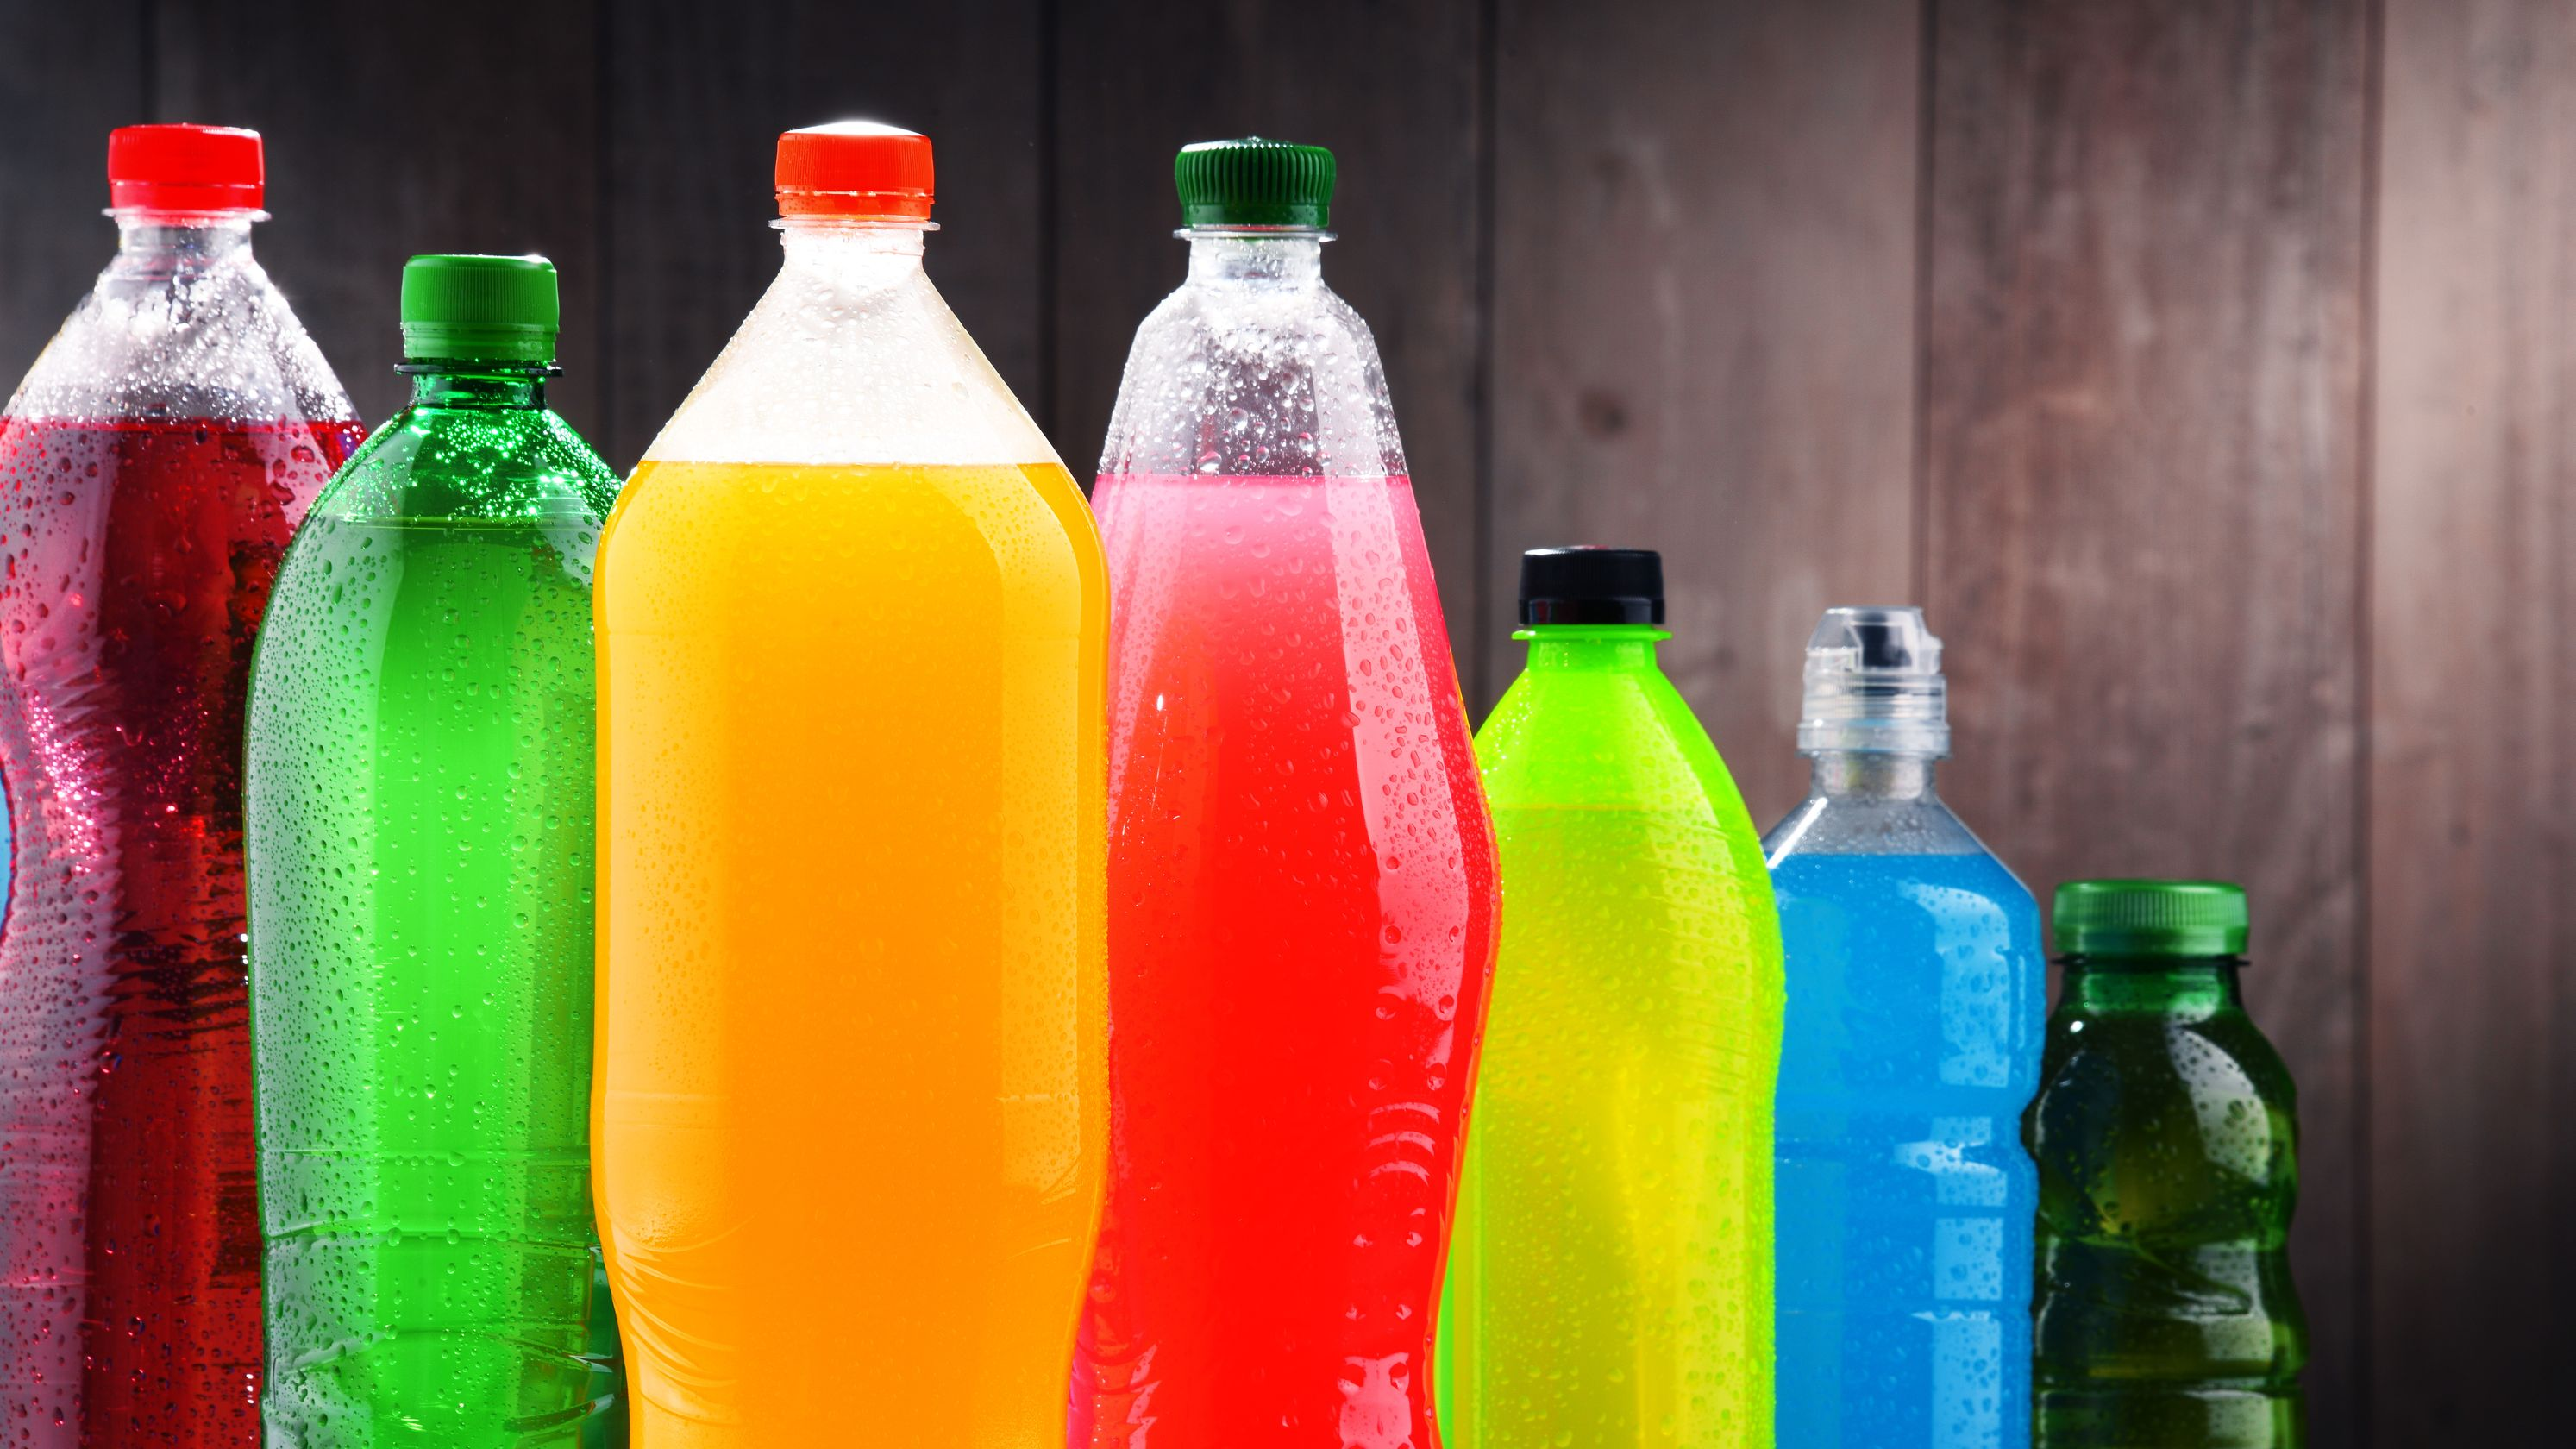 Sugary drinks linked with increased risk of death, study shows